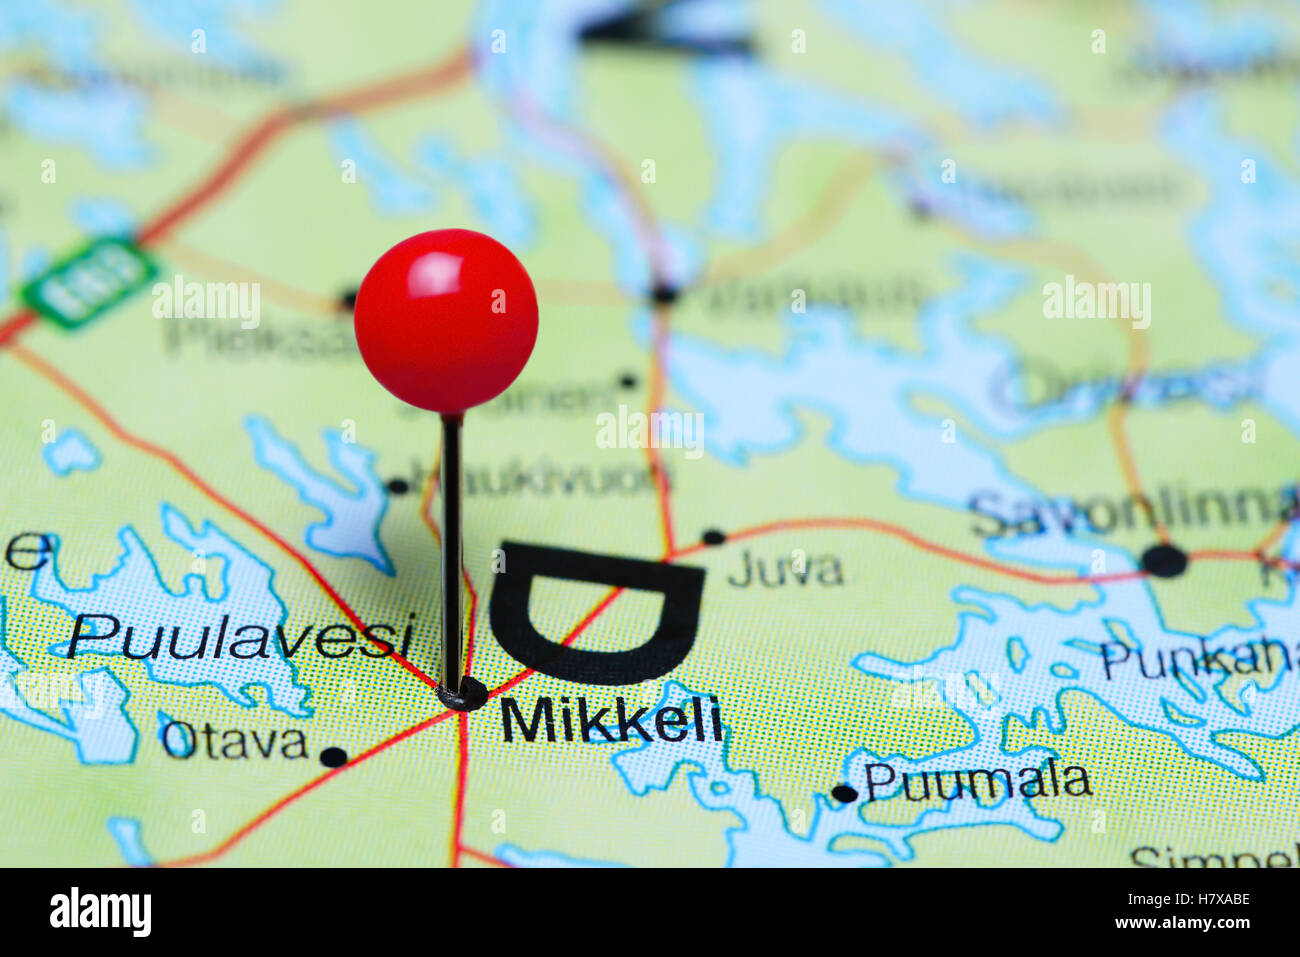 Mikkeli pinned on a map of Finland Stock Photo Royalty Free Image